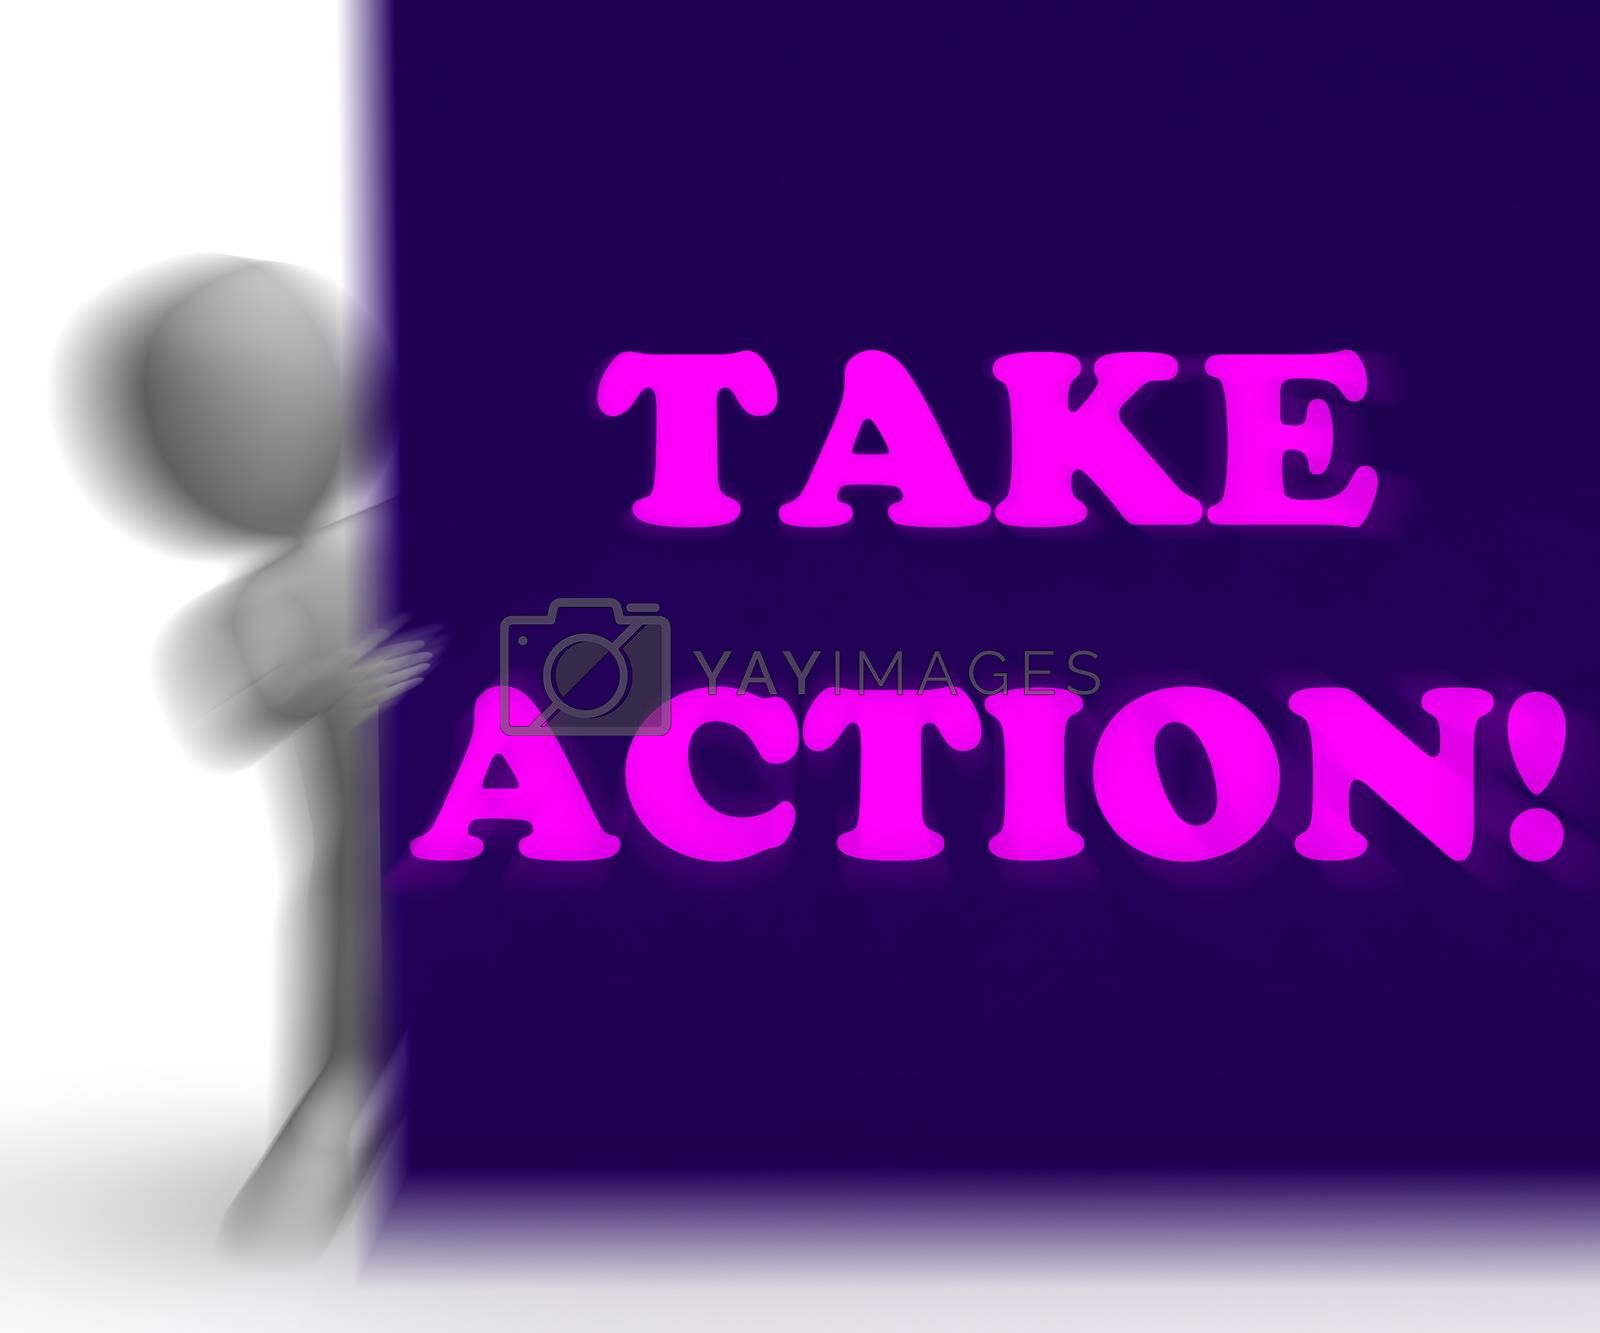 Take Action Placard Shows Inspirational Encouragement by stuartmiles